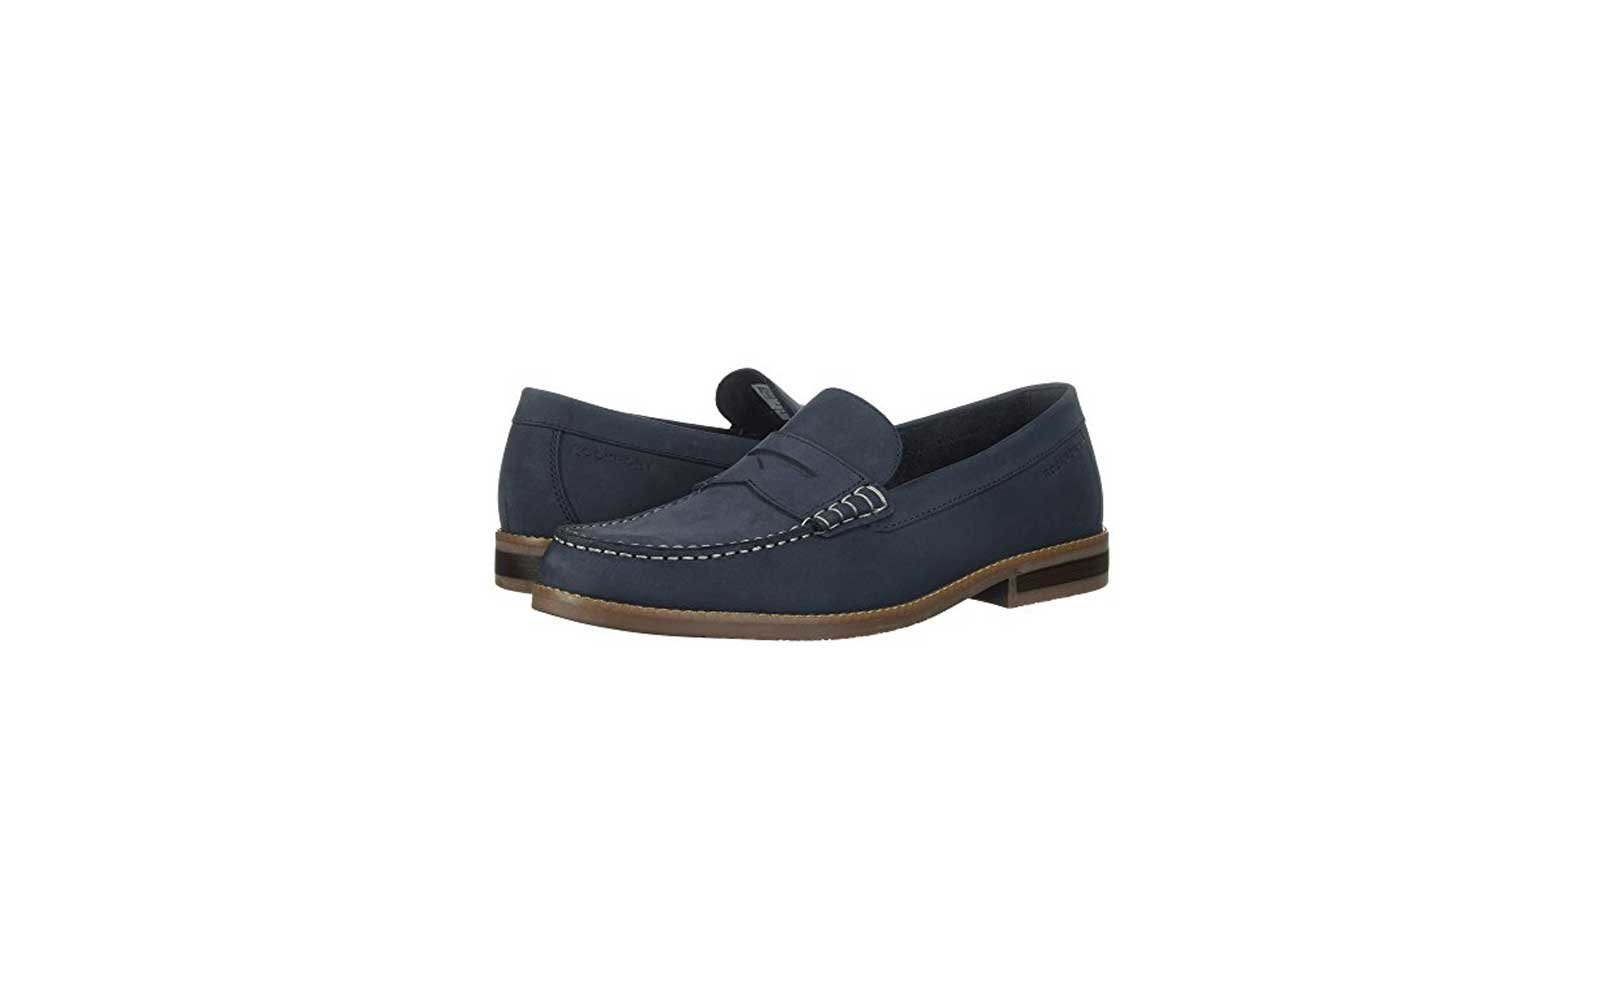 Rockport Cayleb Penny Loafers